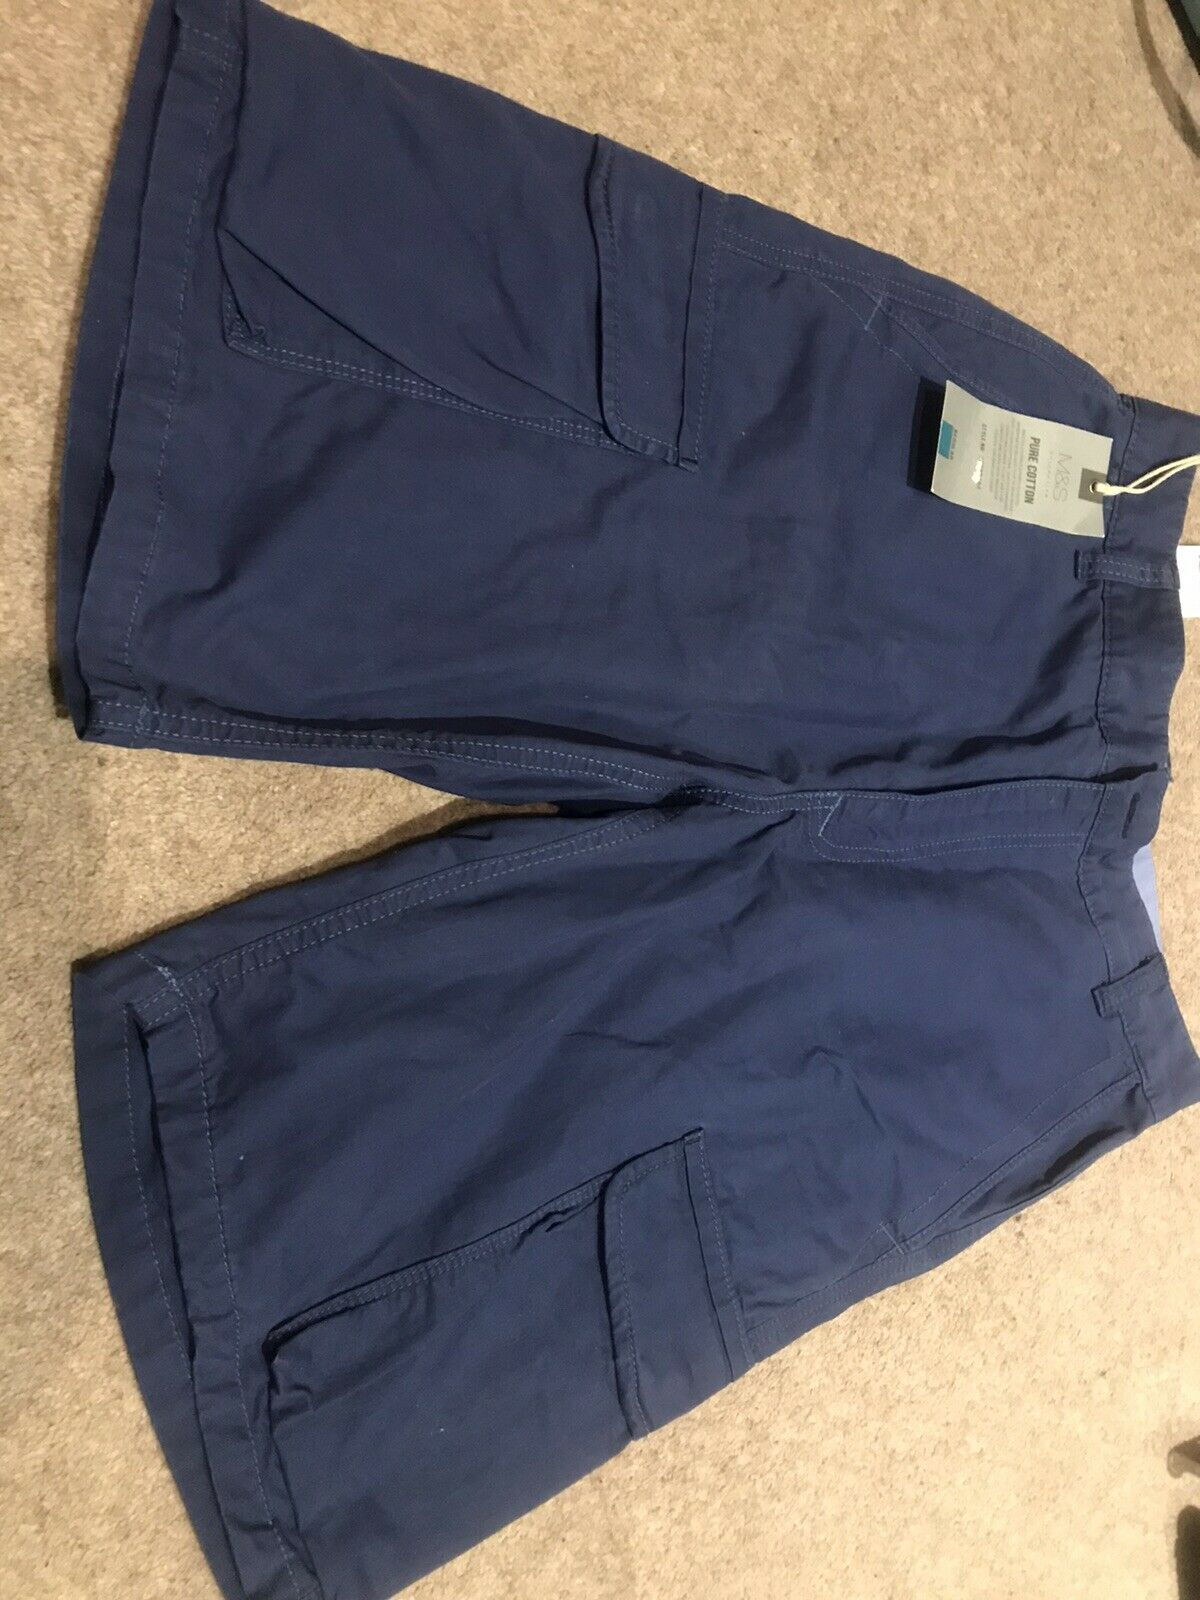 MARKS & SPENCERS MENS SHORTS SIZE 30 INCH WAIST BUE NEW